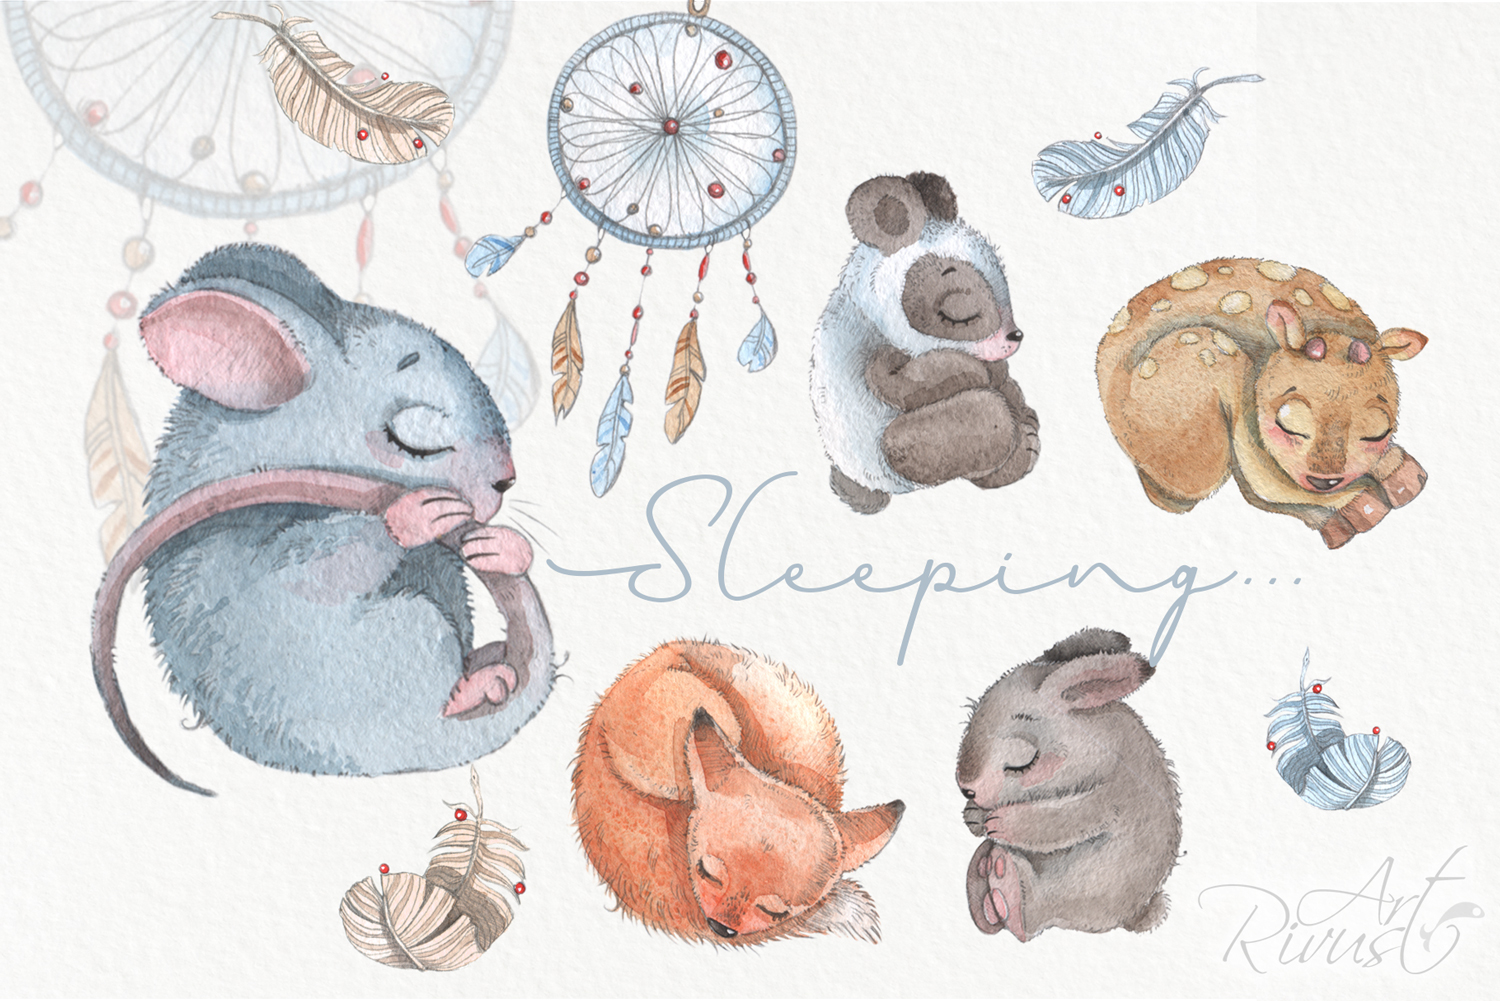 Cute sleeping baby animals watercolor clipart kit example image 5